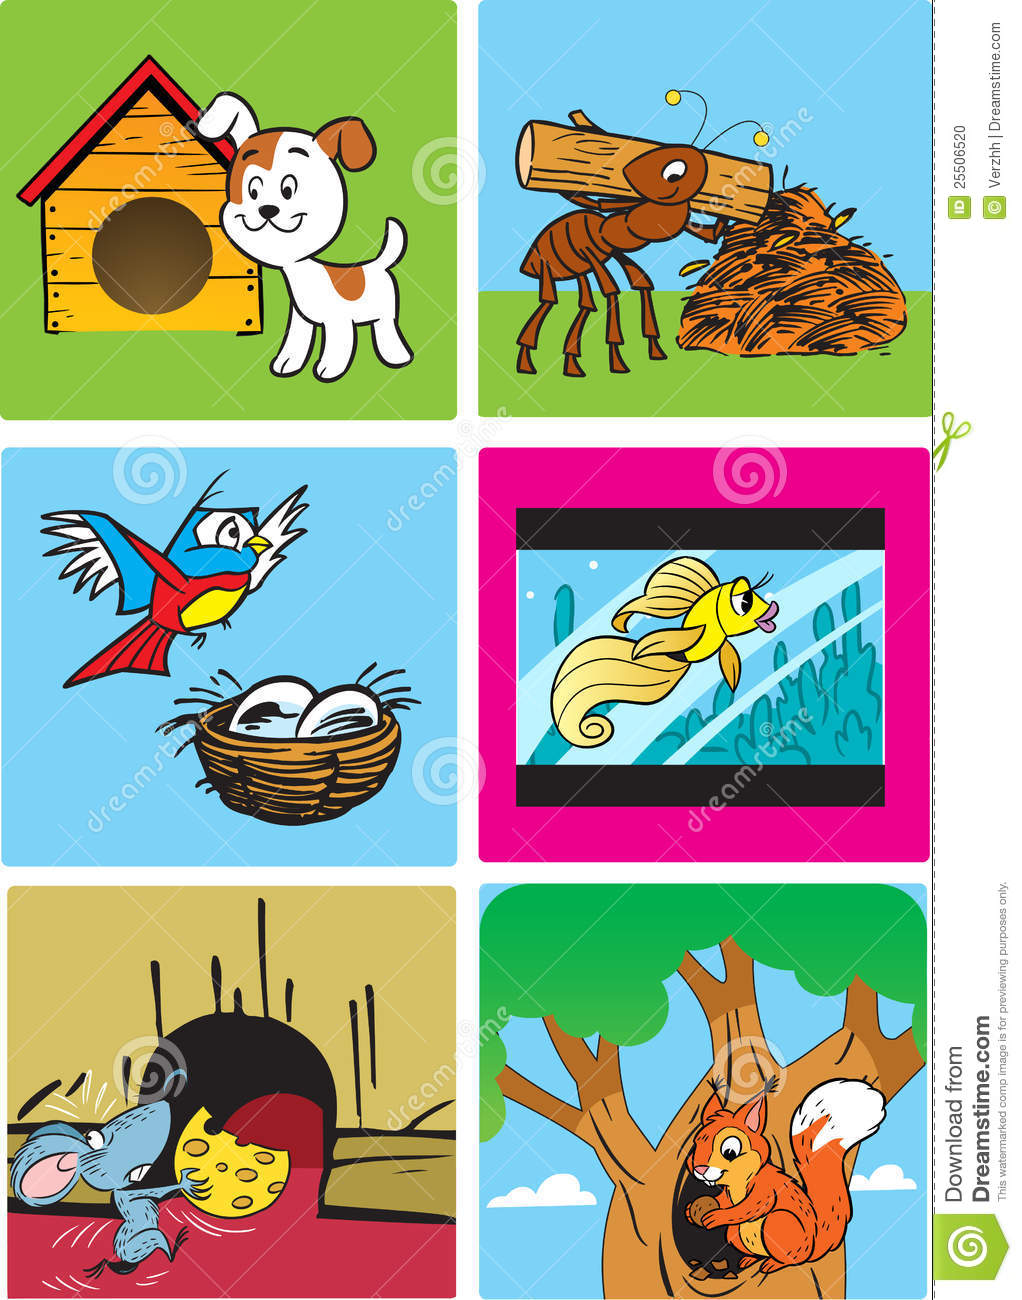 ... Animals And Their Homes Worksheet as well Animals And Their Homes. on